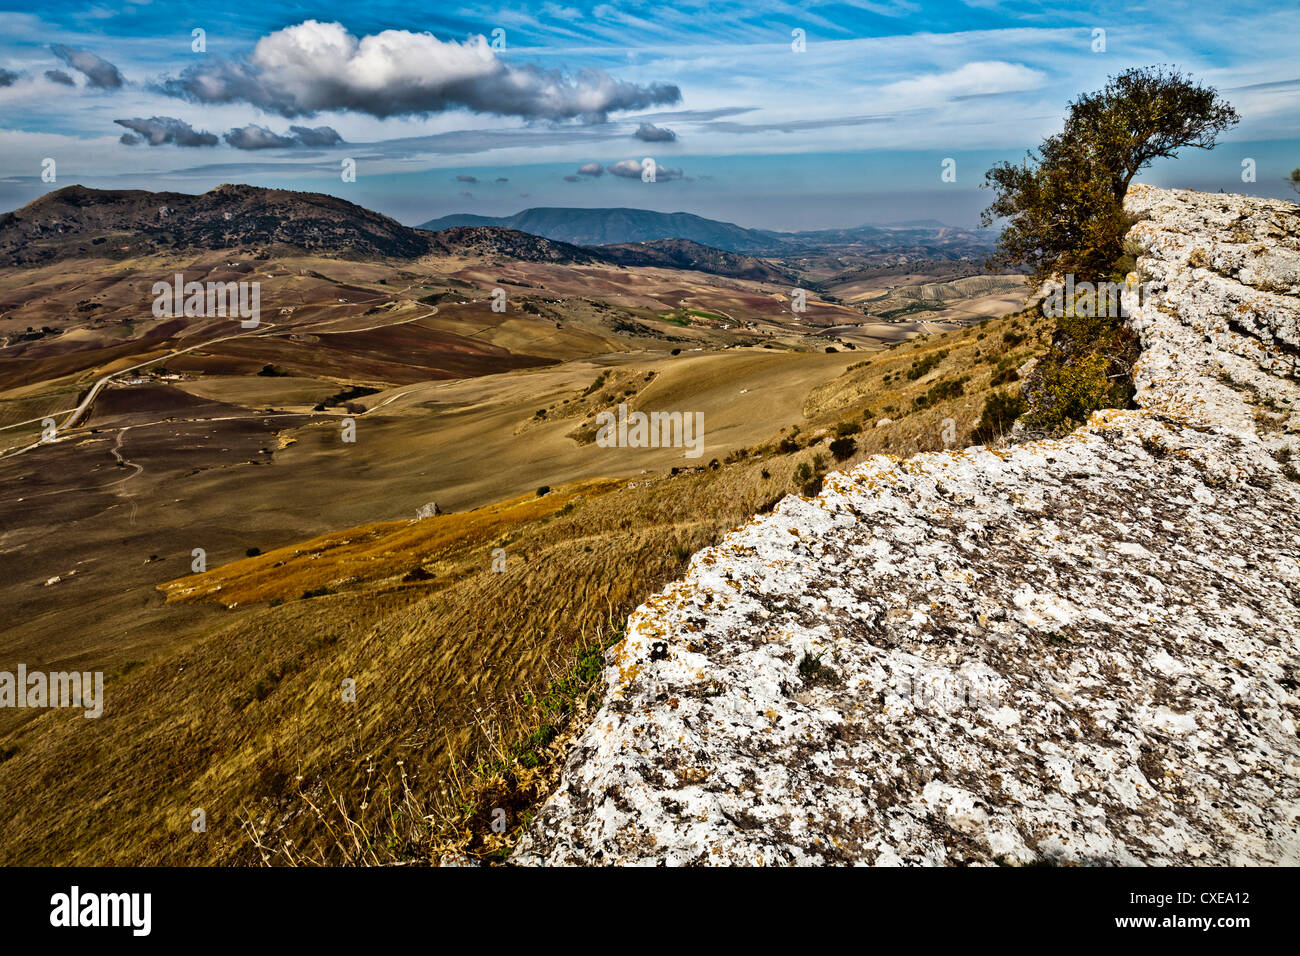 View from the site of Acinipo (Ronda La Vieja) near Ronda, Andalucia, Spain, Europe - Stock Image